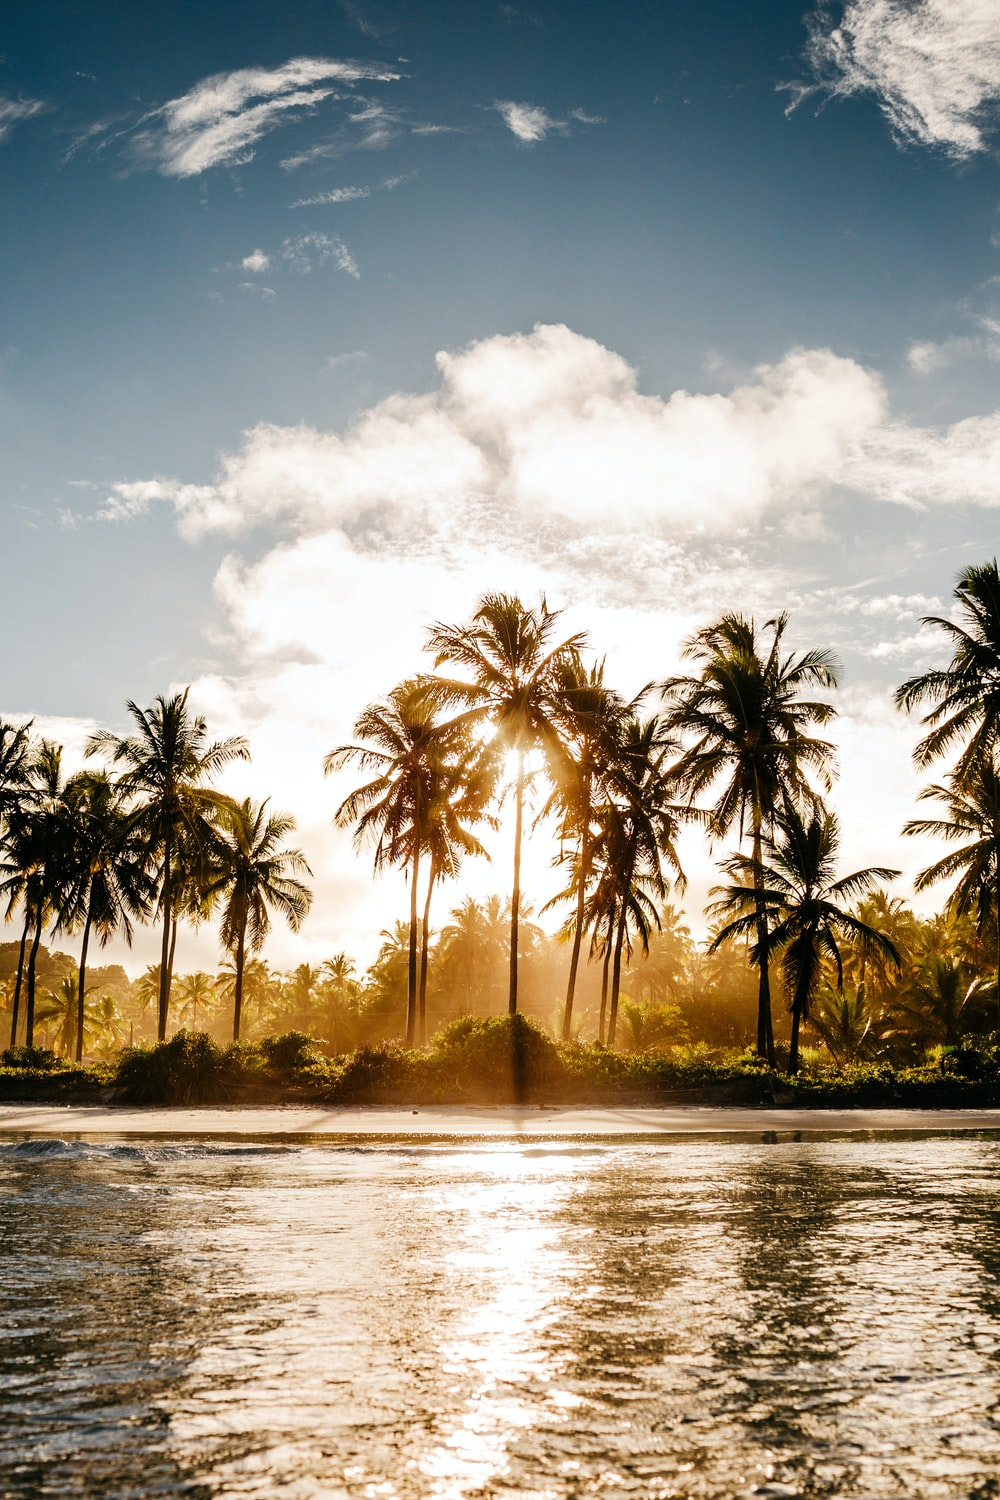 green coconut trees near body of water during daytime